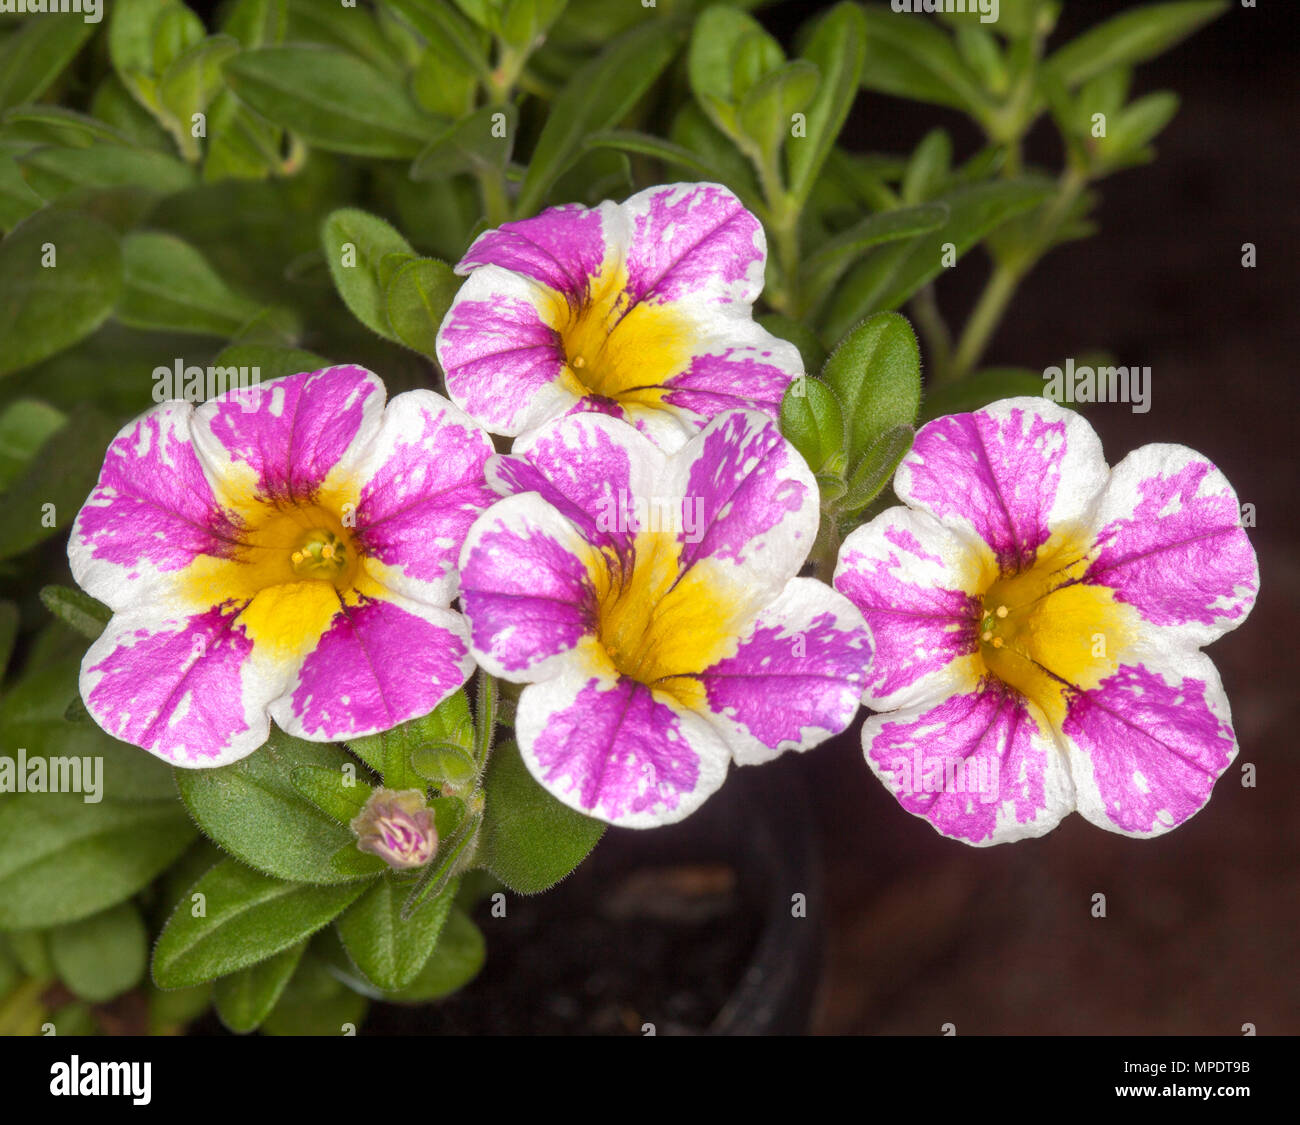 Cluster Of Spectacular And Unusual Pink And White Flowers With